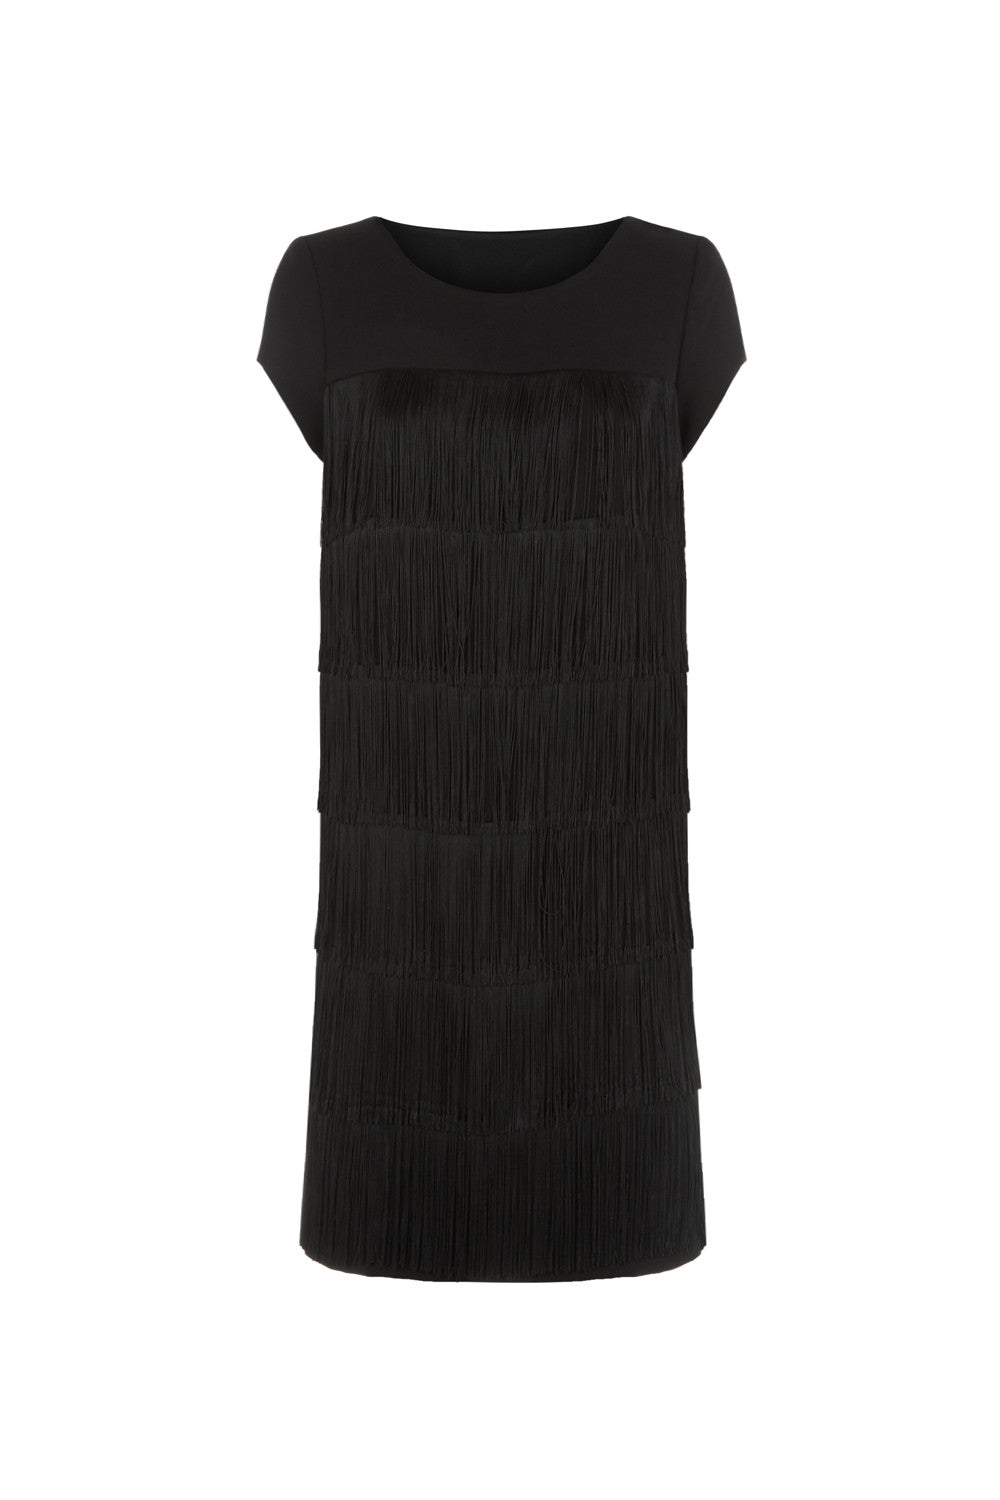 Layla Dress - Maternity - Madderson London